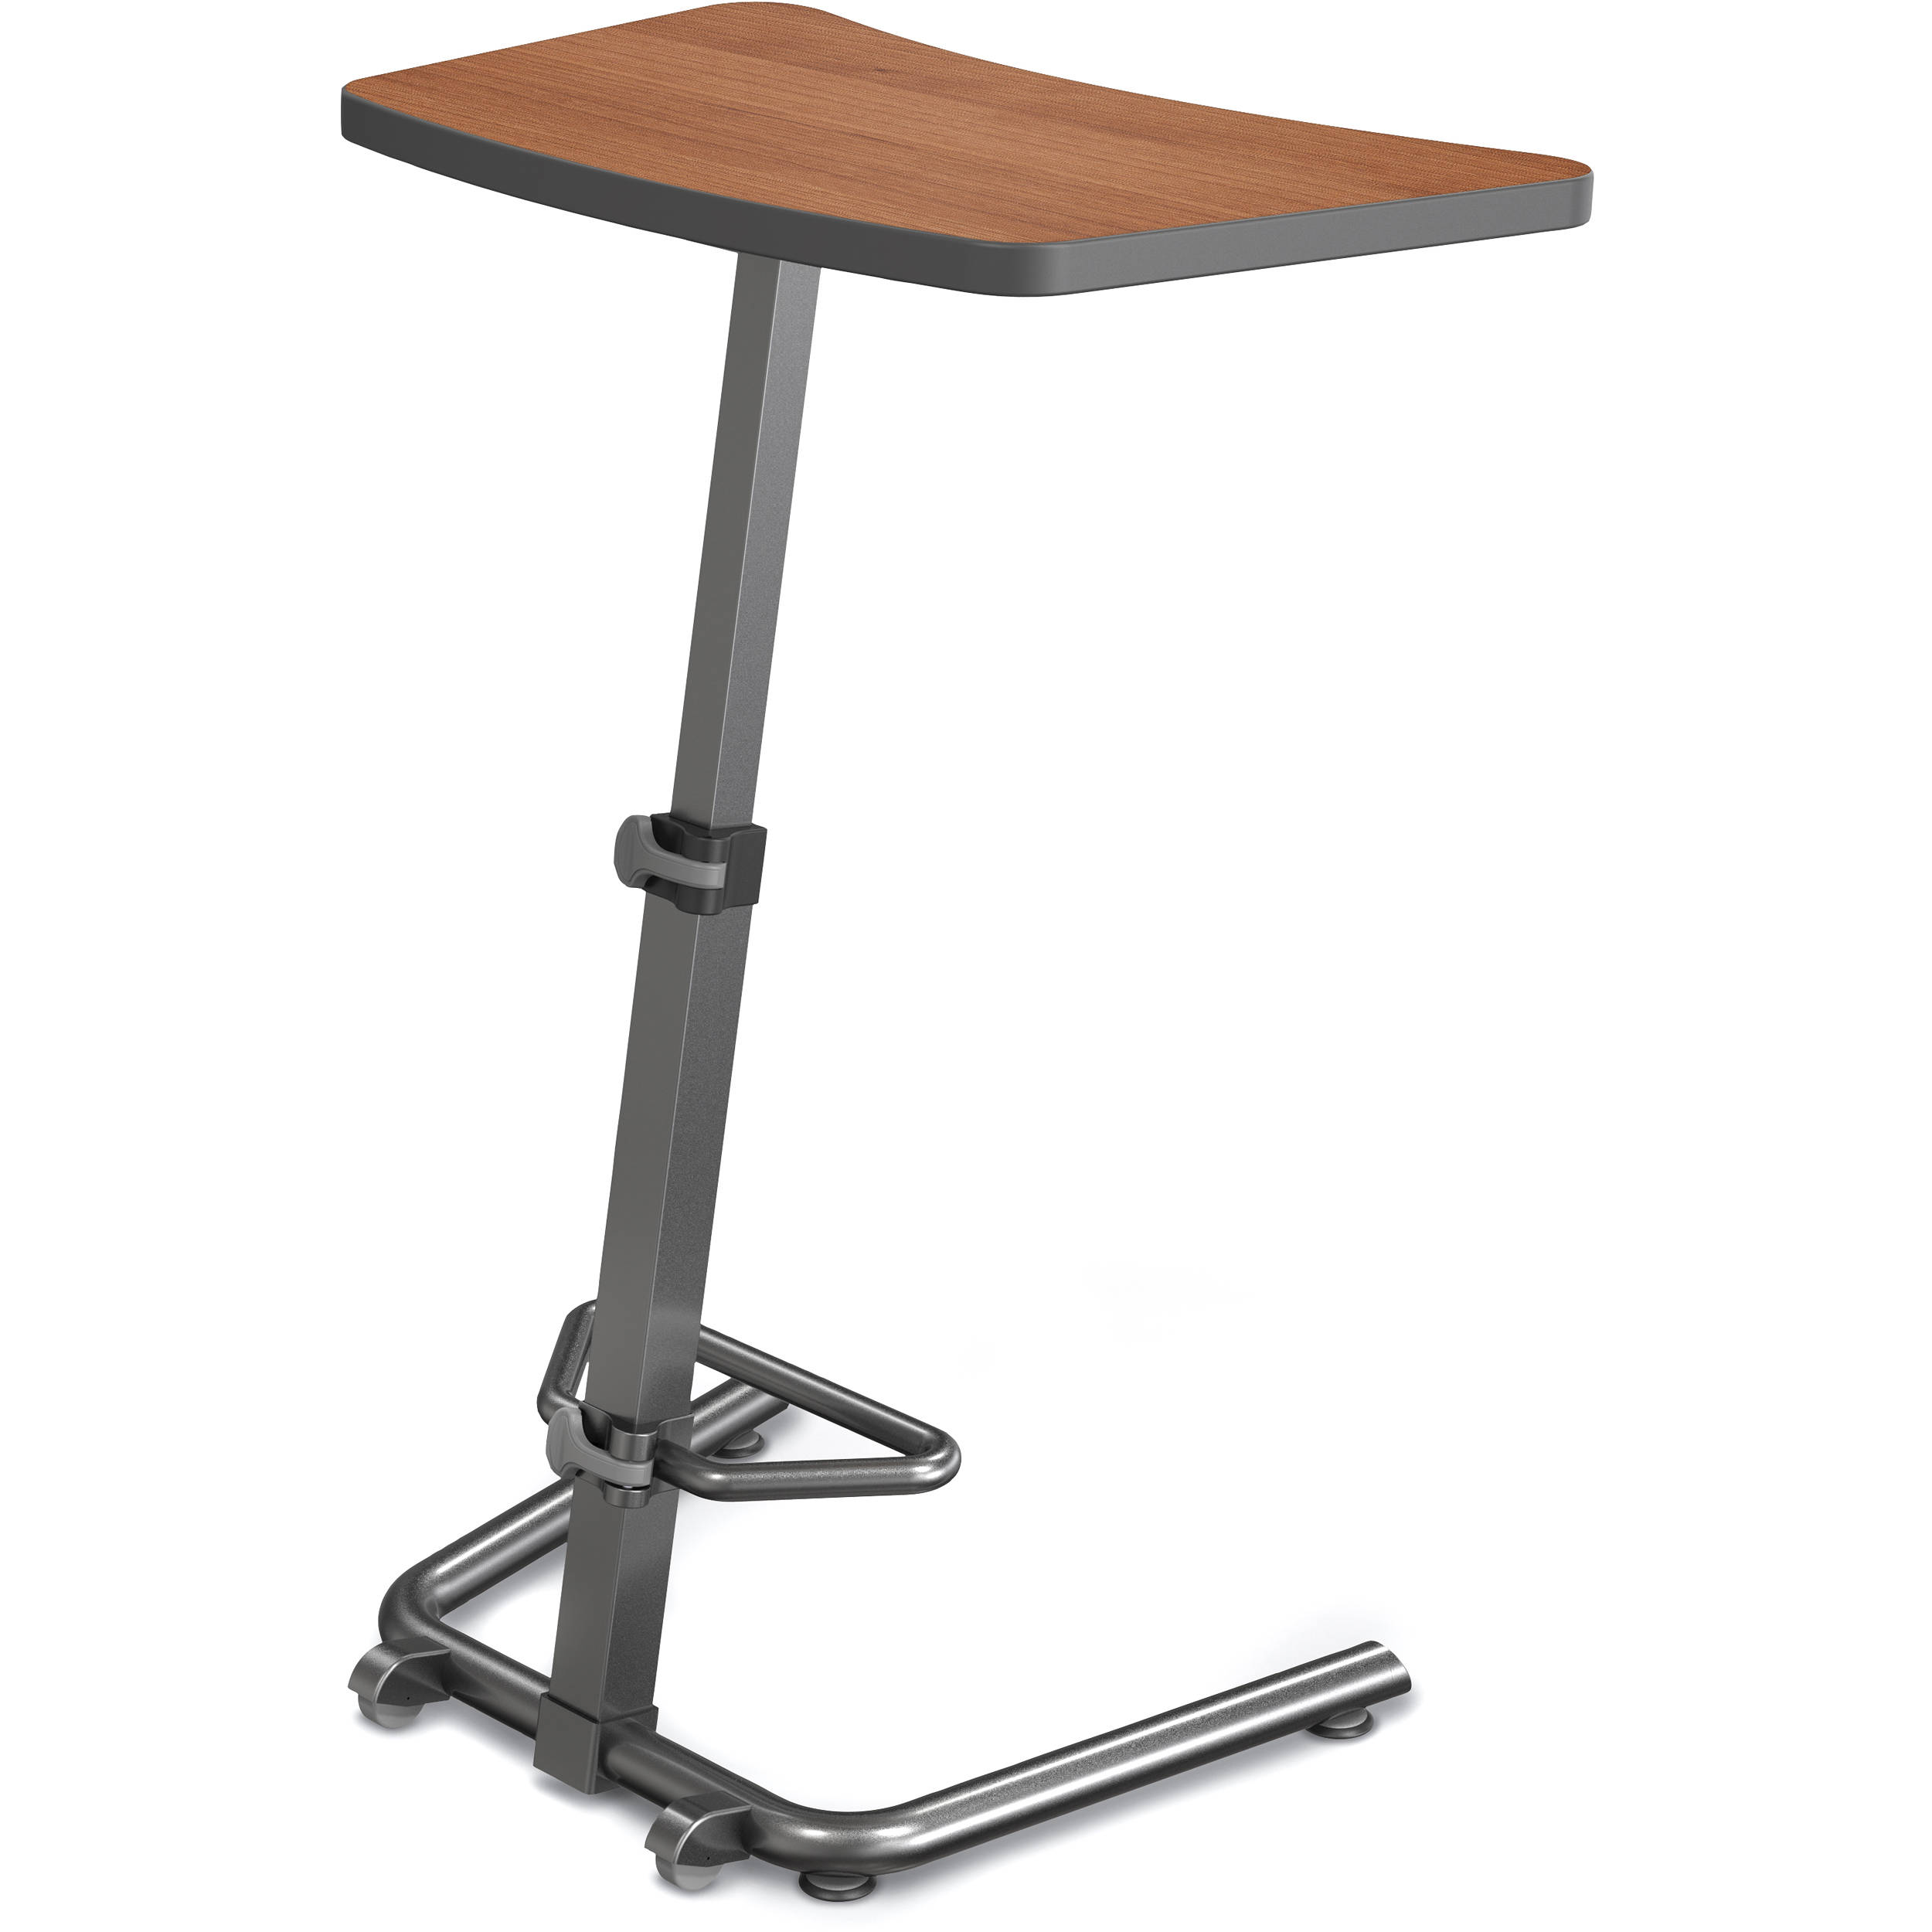 uxl student sitstand stand sit system desks desk furniture smith classroom